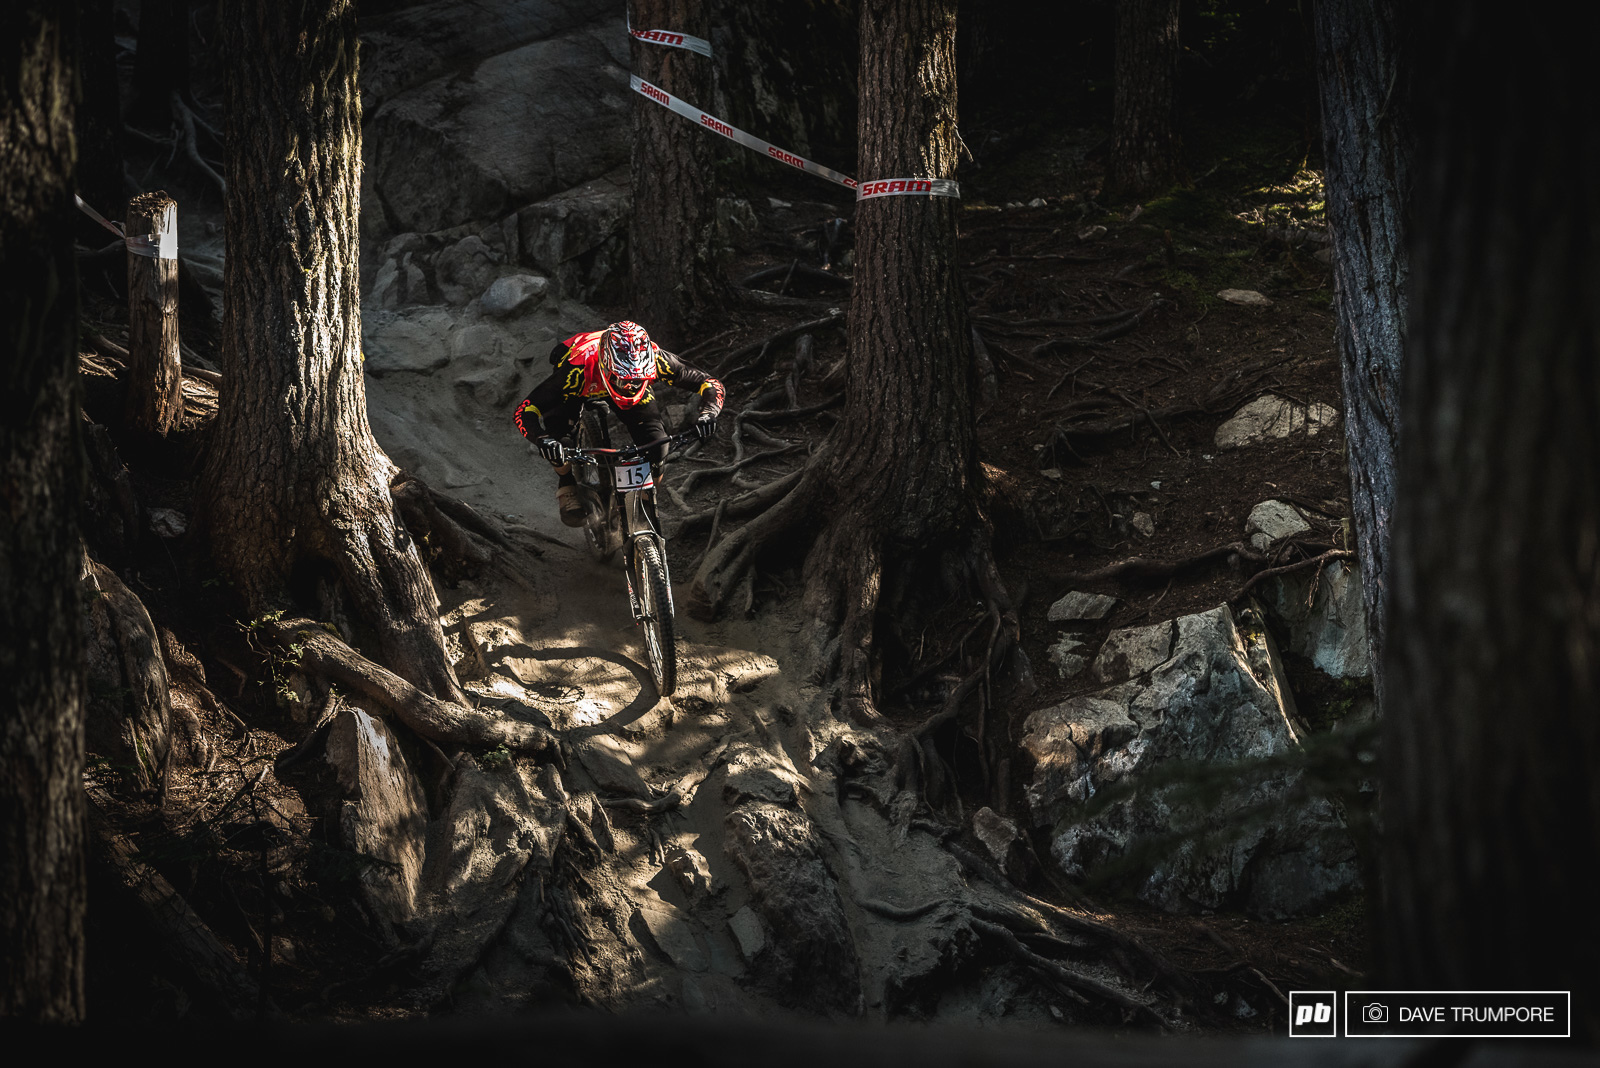 A pre-race favorite coming into Crankworx Marl Wallace would smash his way down for 7th.